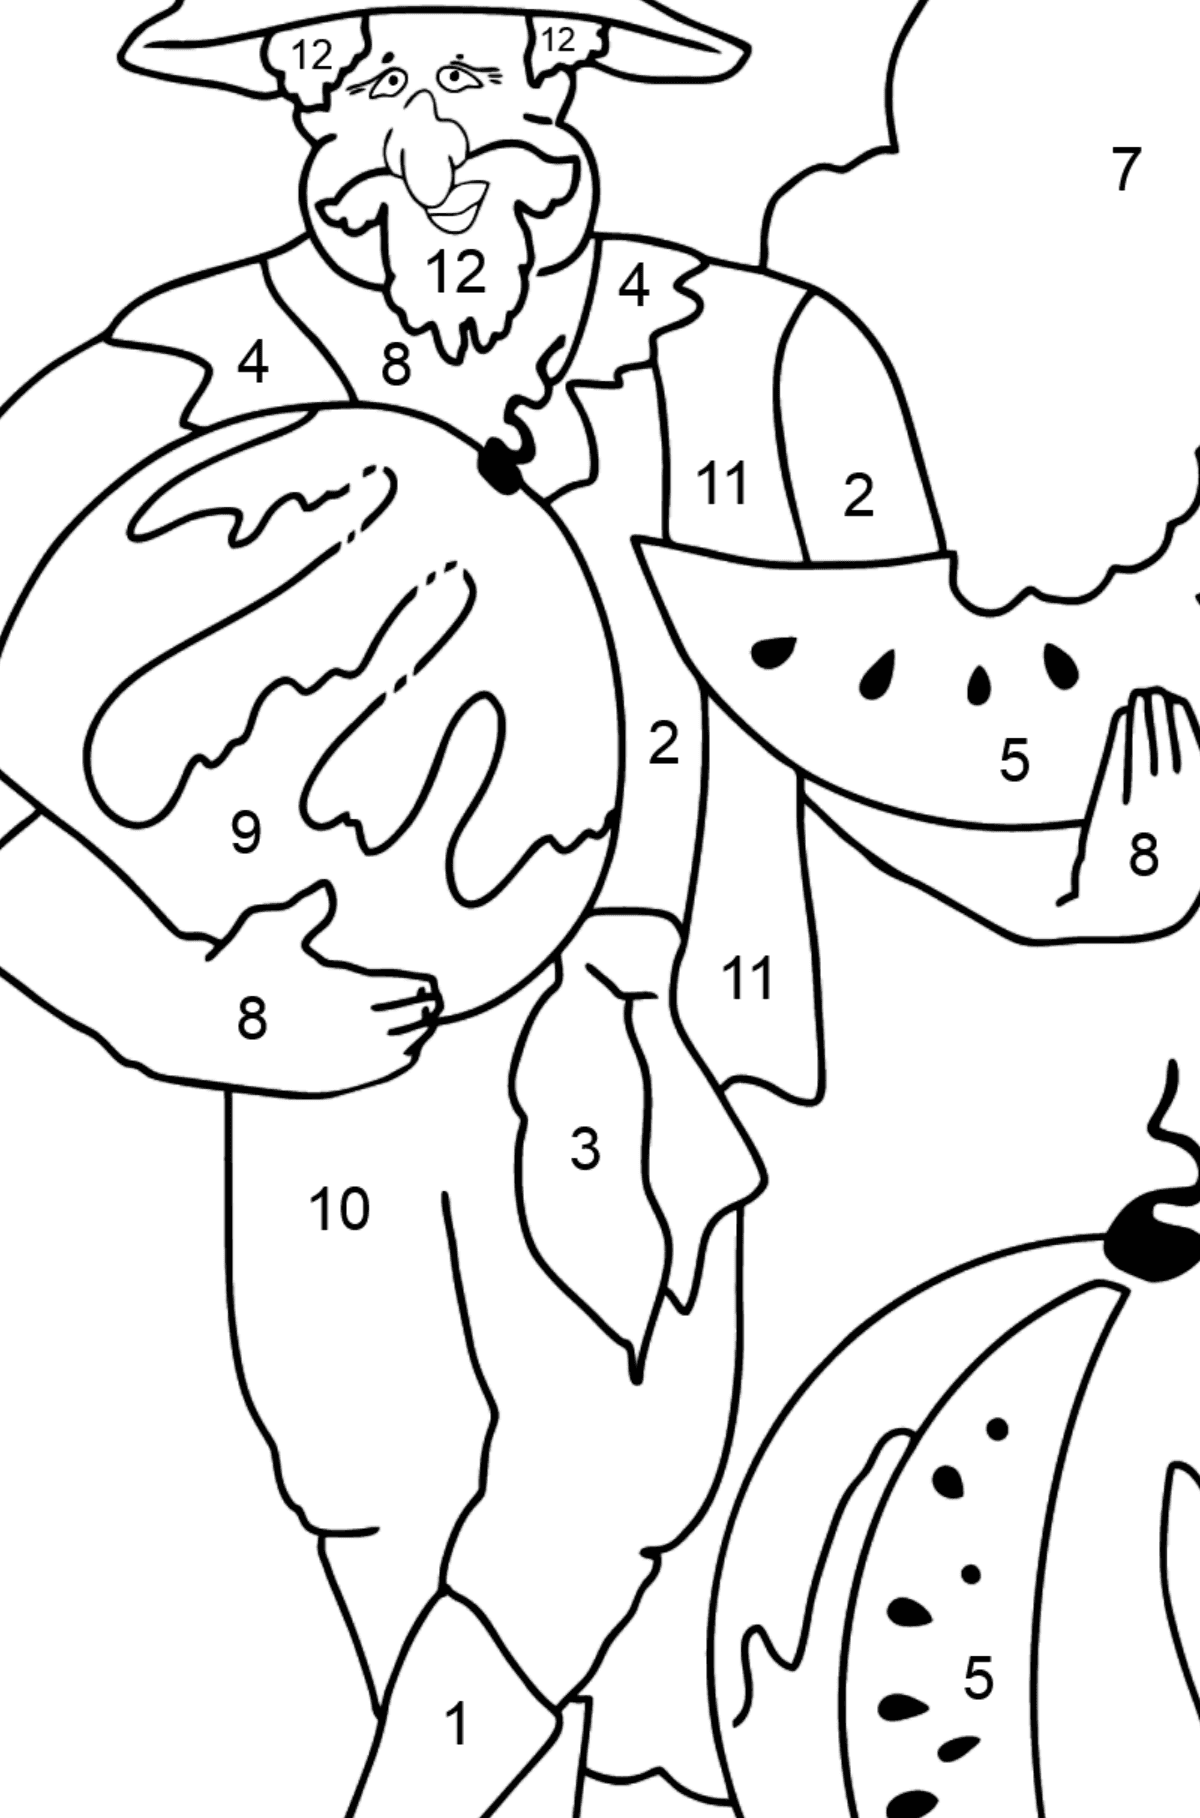 Coloring Page - A Pirate is Eating a Tasty Watermelon - Coloring by Numbers for Kids